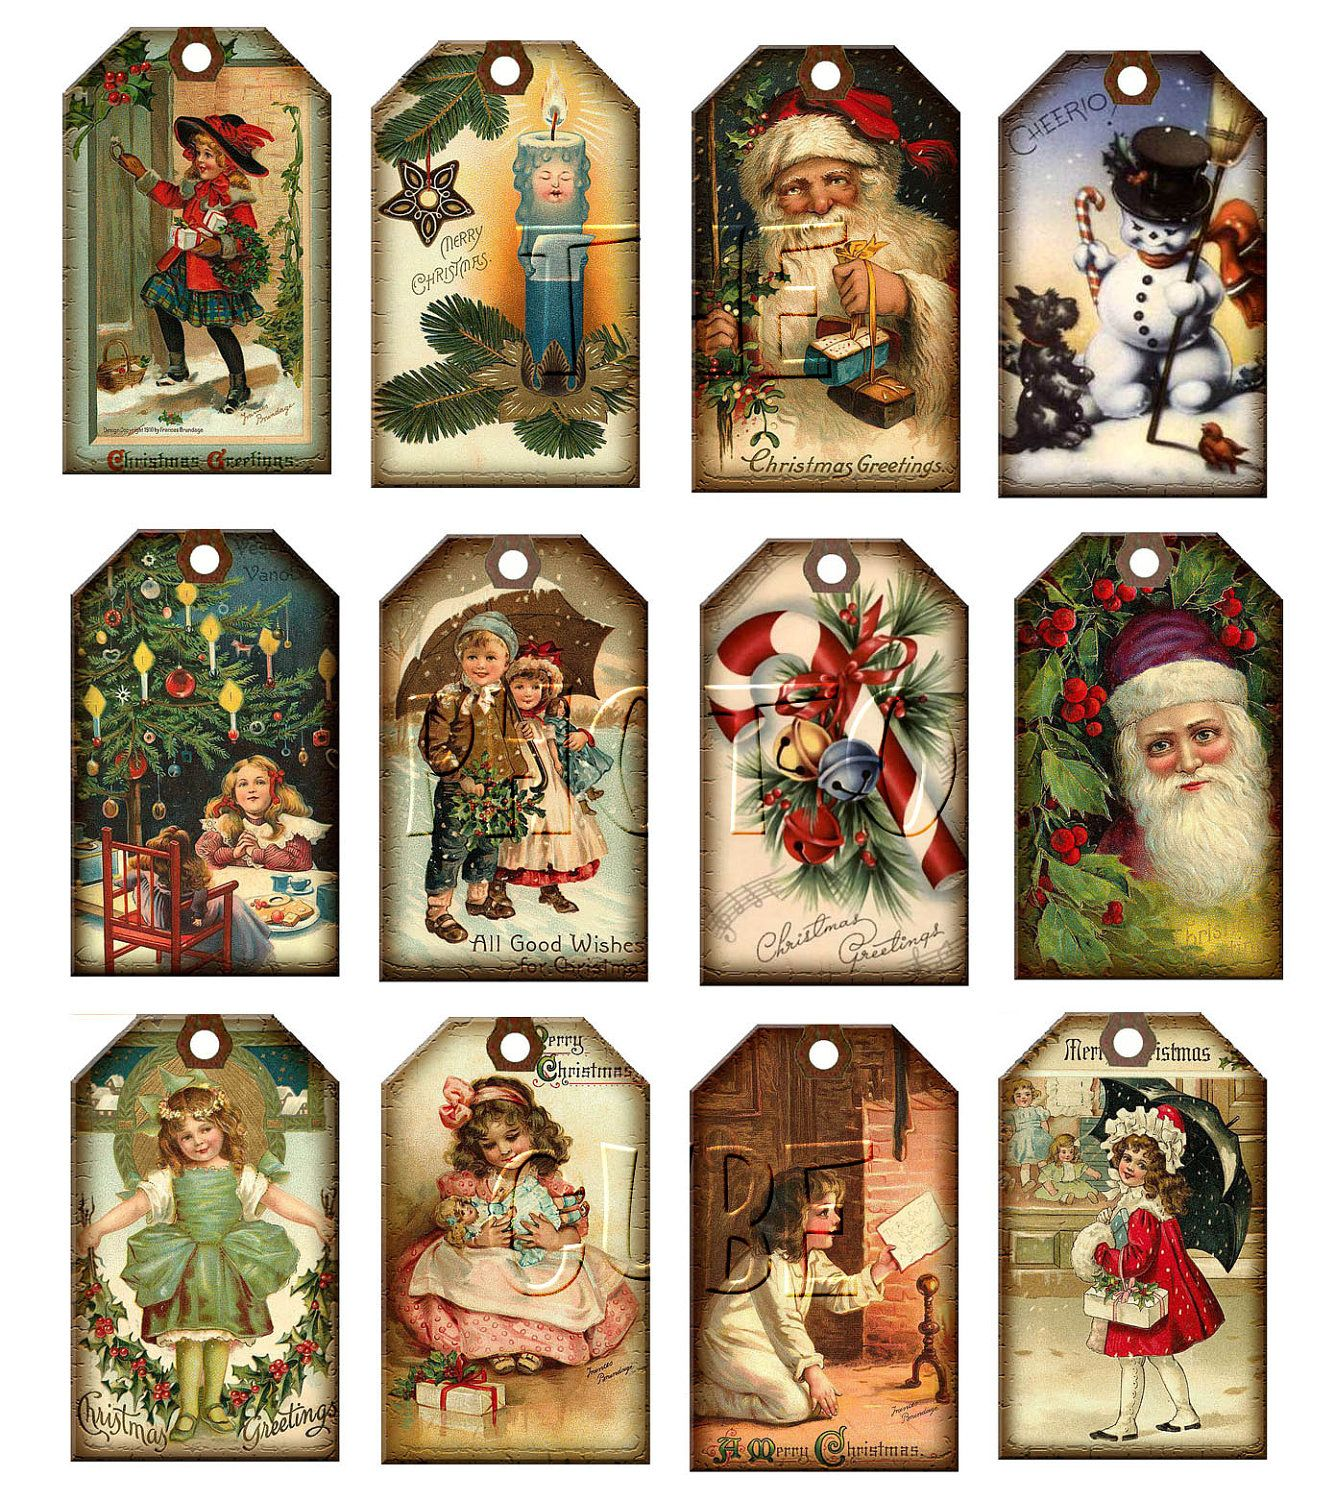 Free printable vintage christmas cards - Christmas Vintage Art Hang Gift Tags Santa Claus Candy Cane Candle Print Your Own Printable Digital Collage Sheet New Lower Price